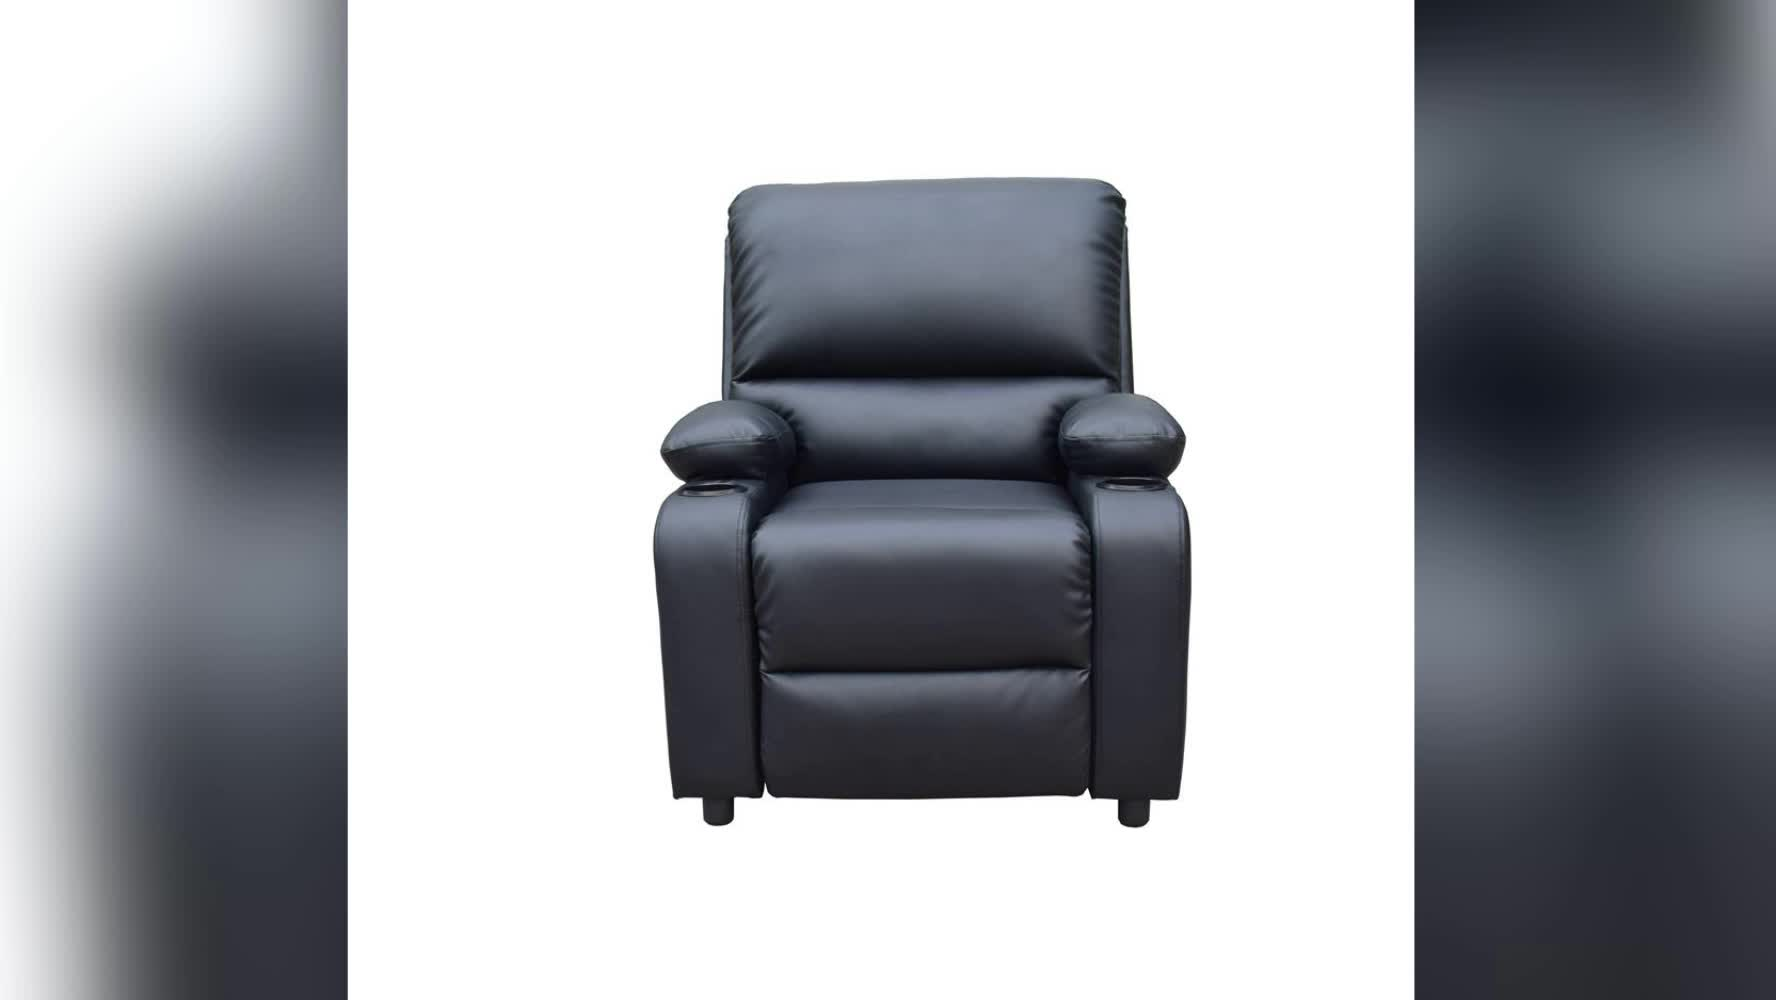 Lightweight recliner, black leather recliner sofa